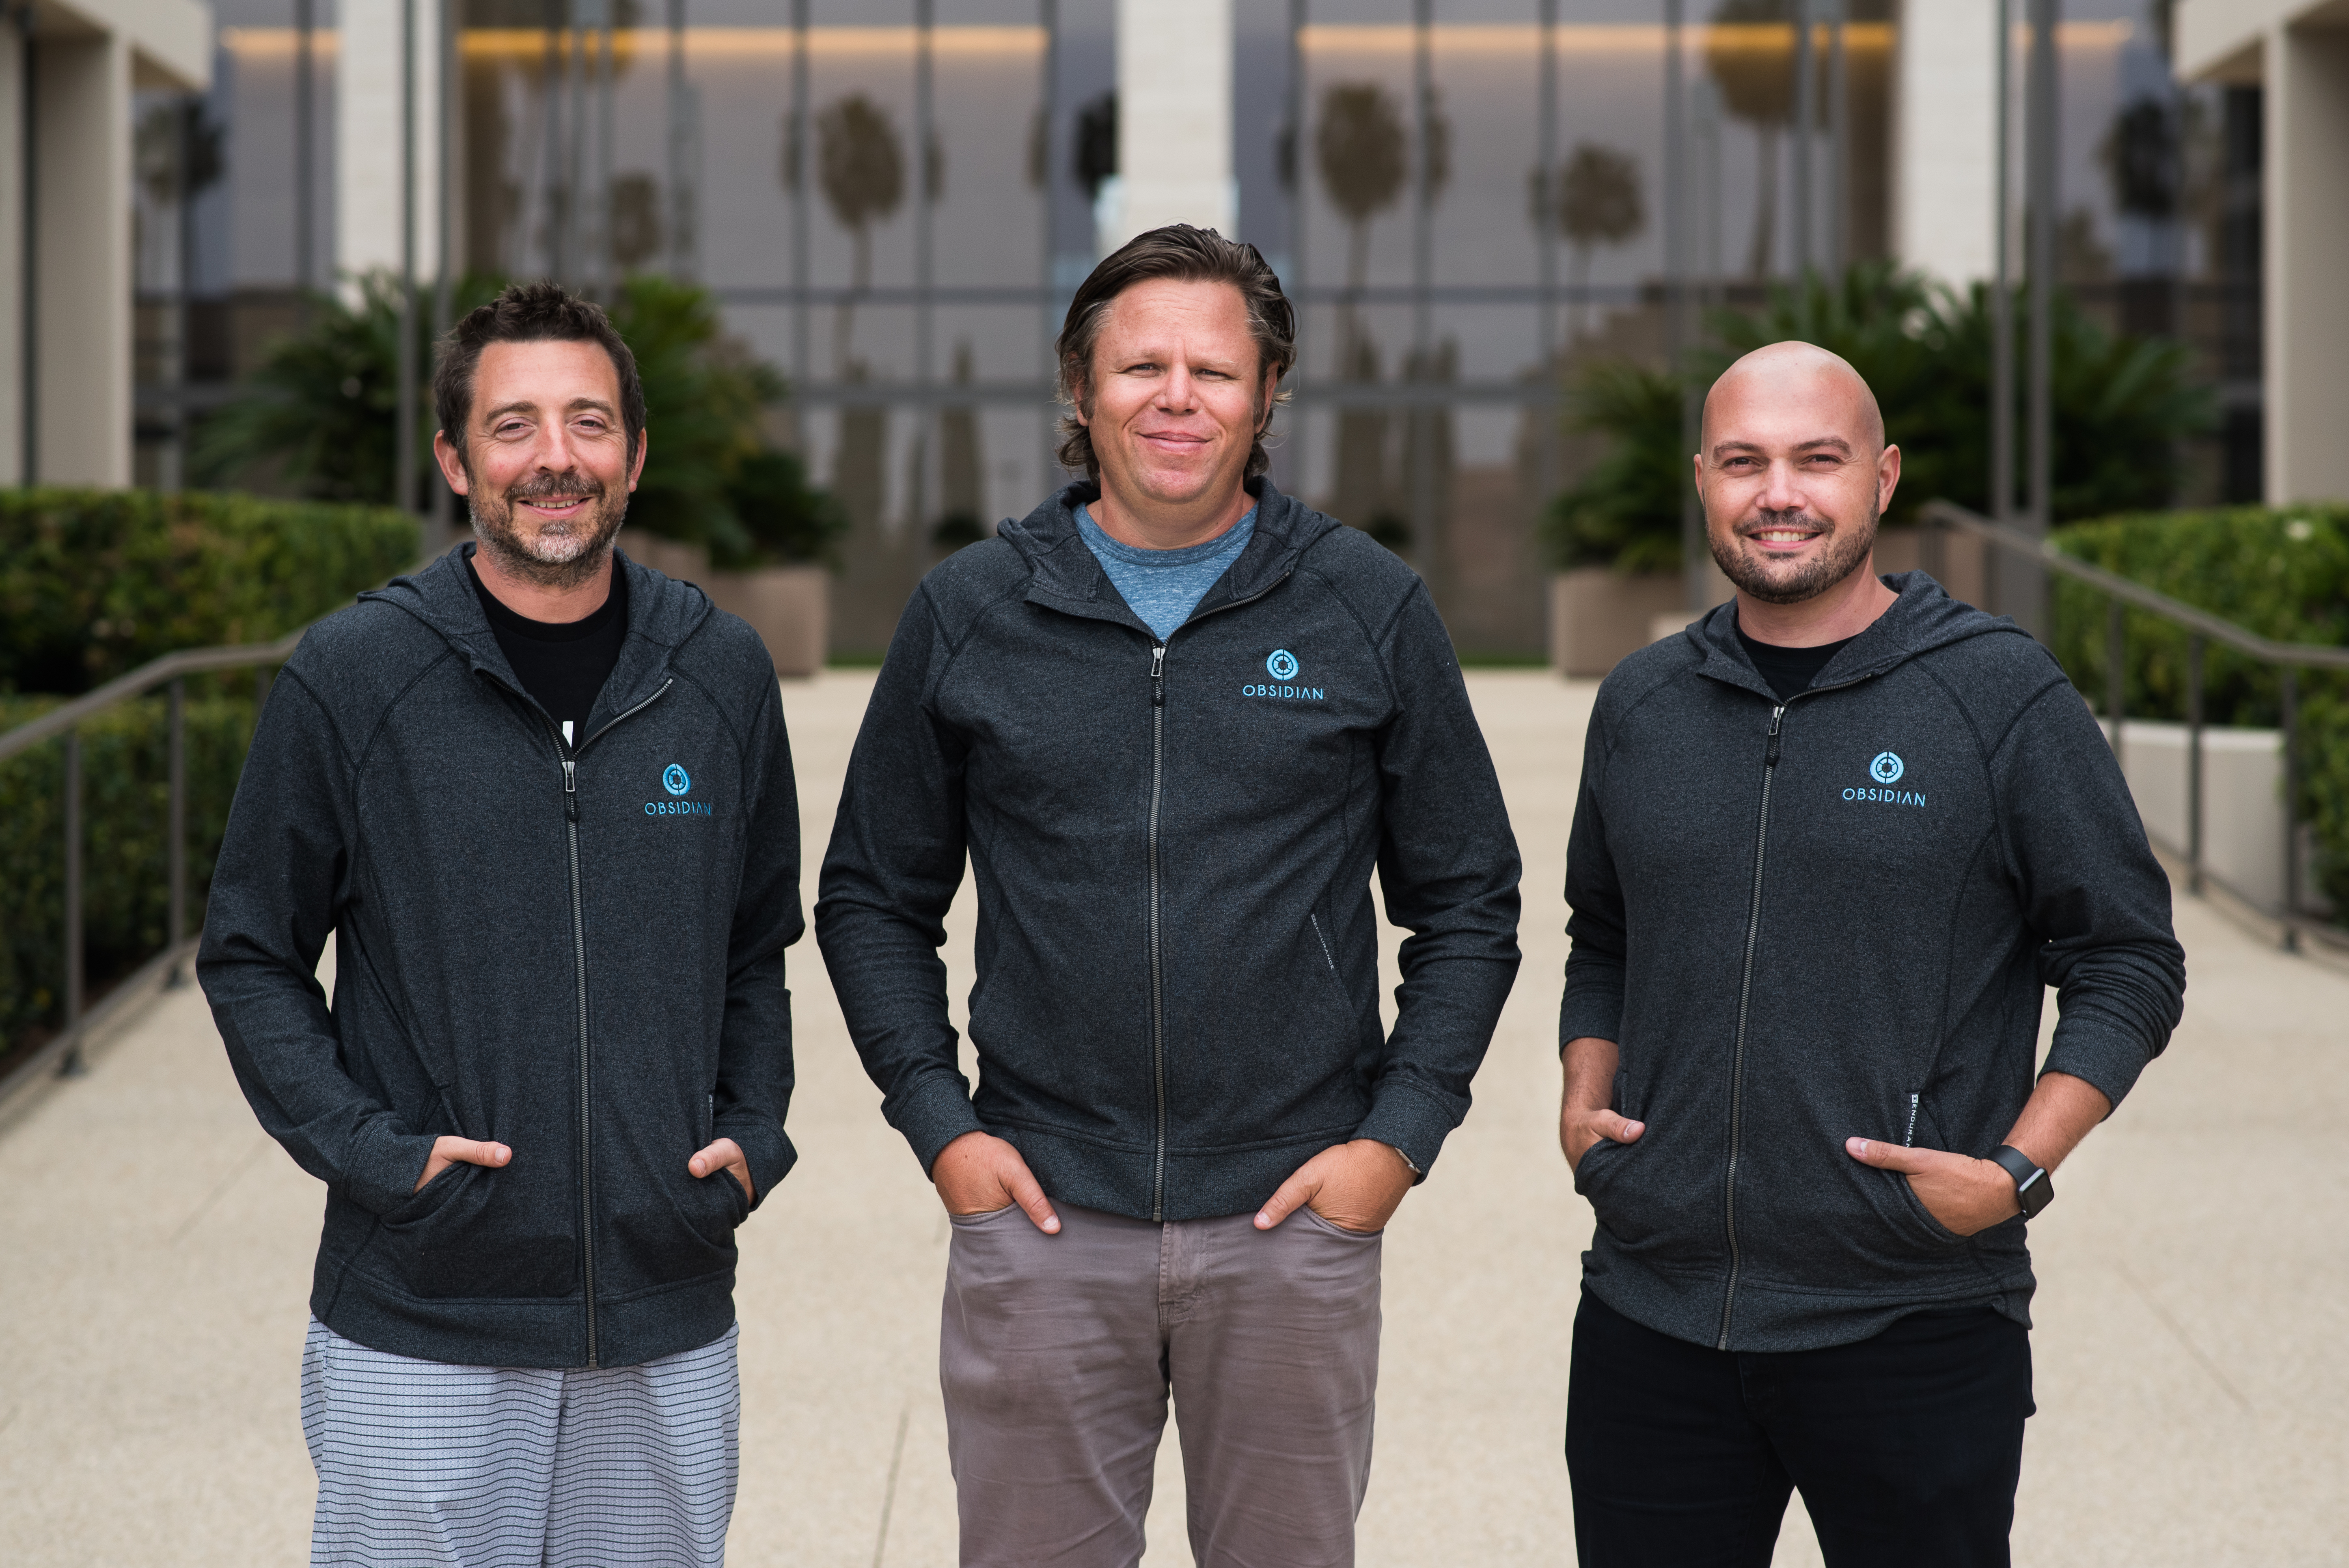 The members of Obsidian, a new security startup, include CEO Glen Chisholm (center), tech chief Ben Johnson (right), and chief scientist Matt Wolff (left).